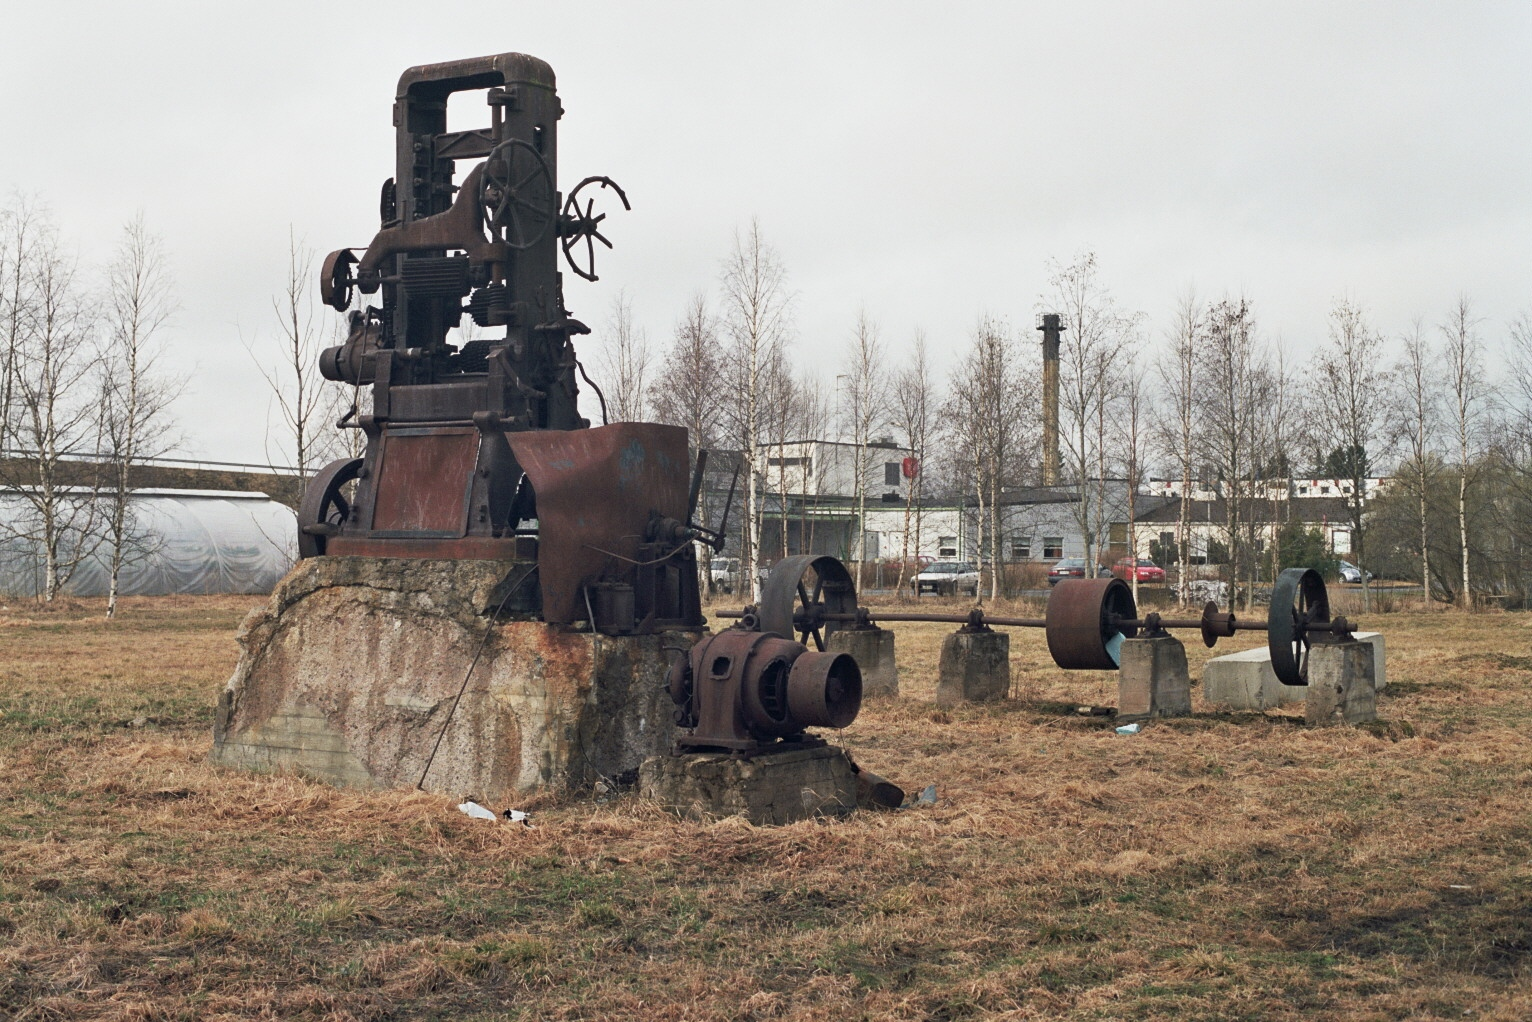 File:Old machinery in Liminka May2009 001.jpg